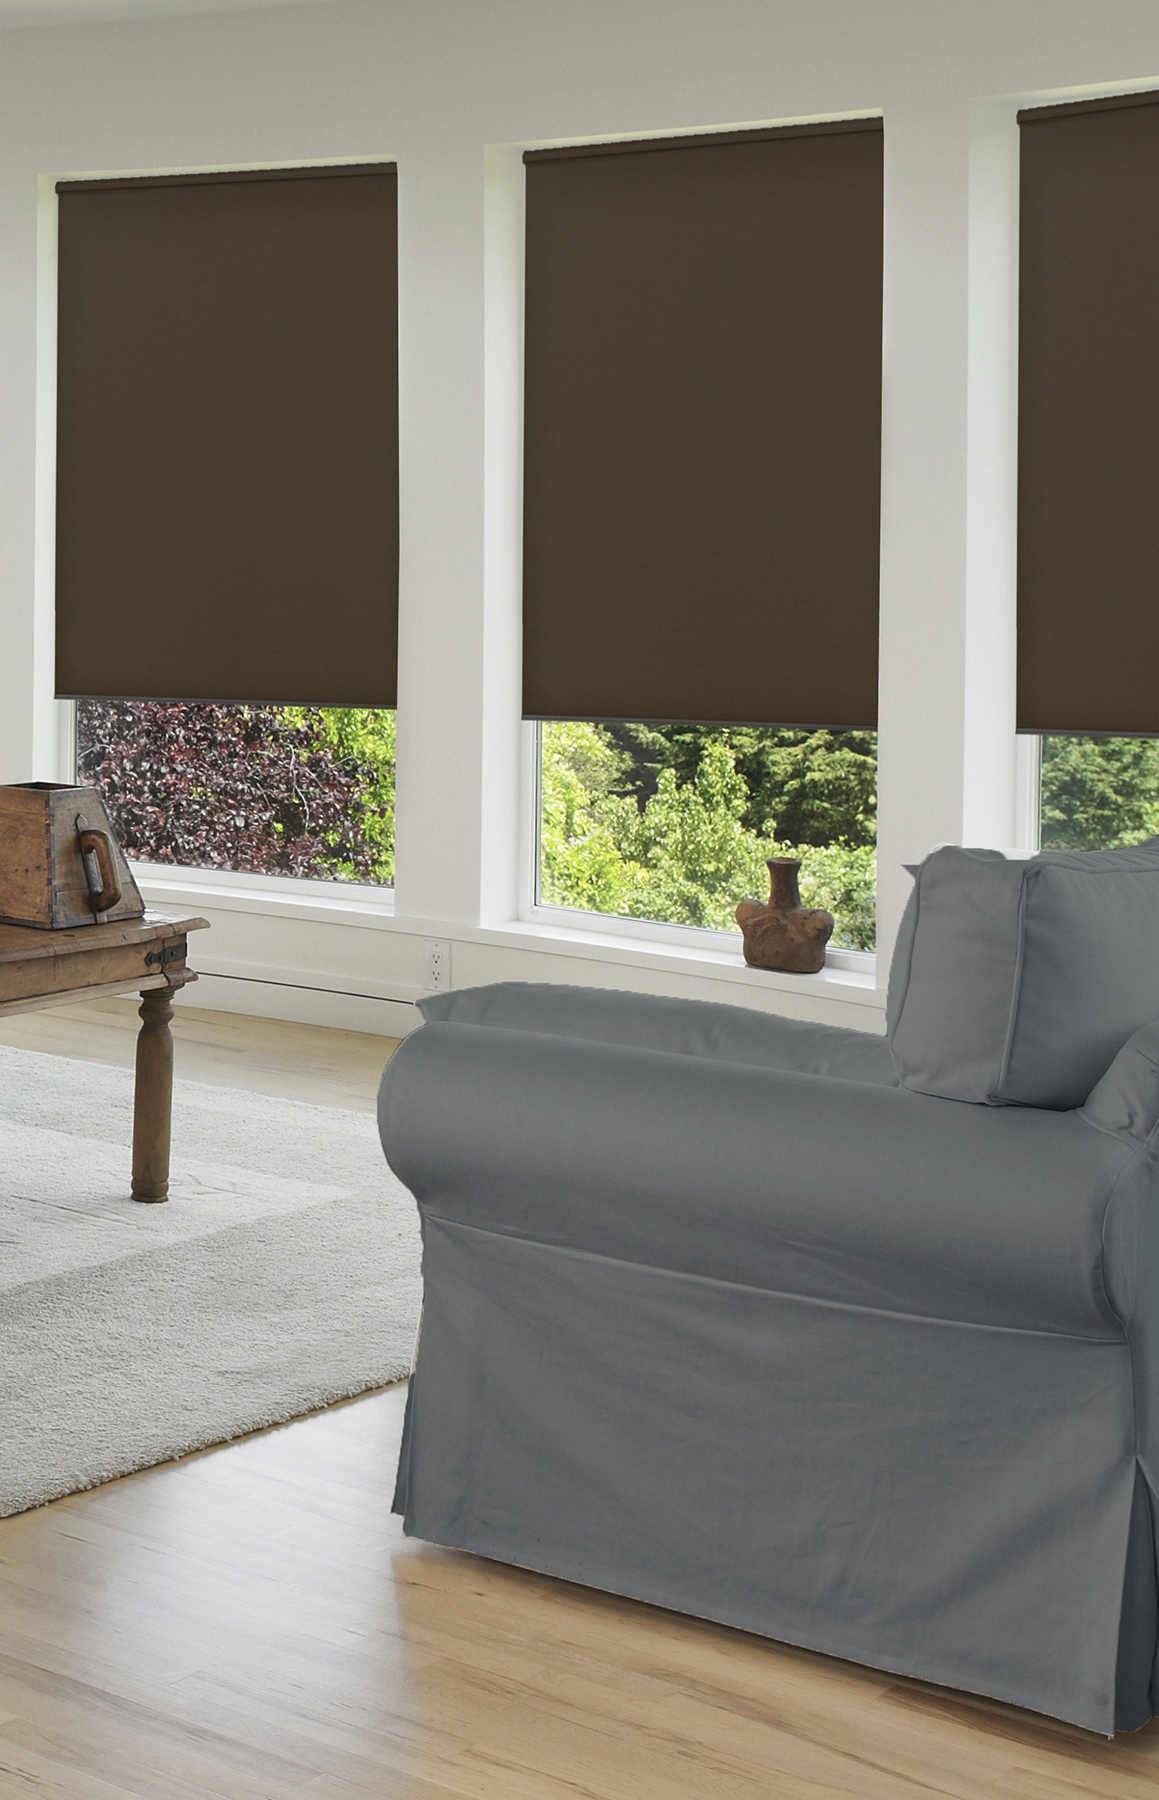 What are the Best Total Blackout Blinds?